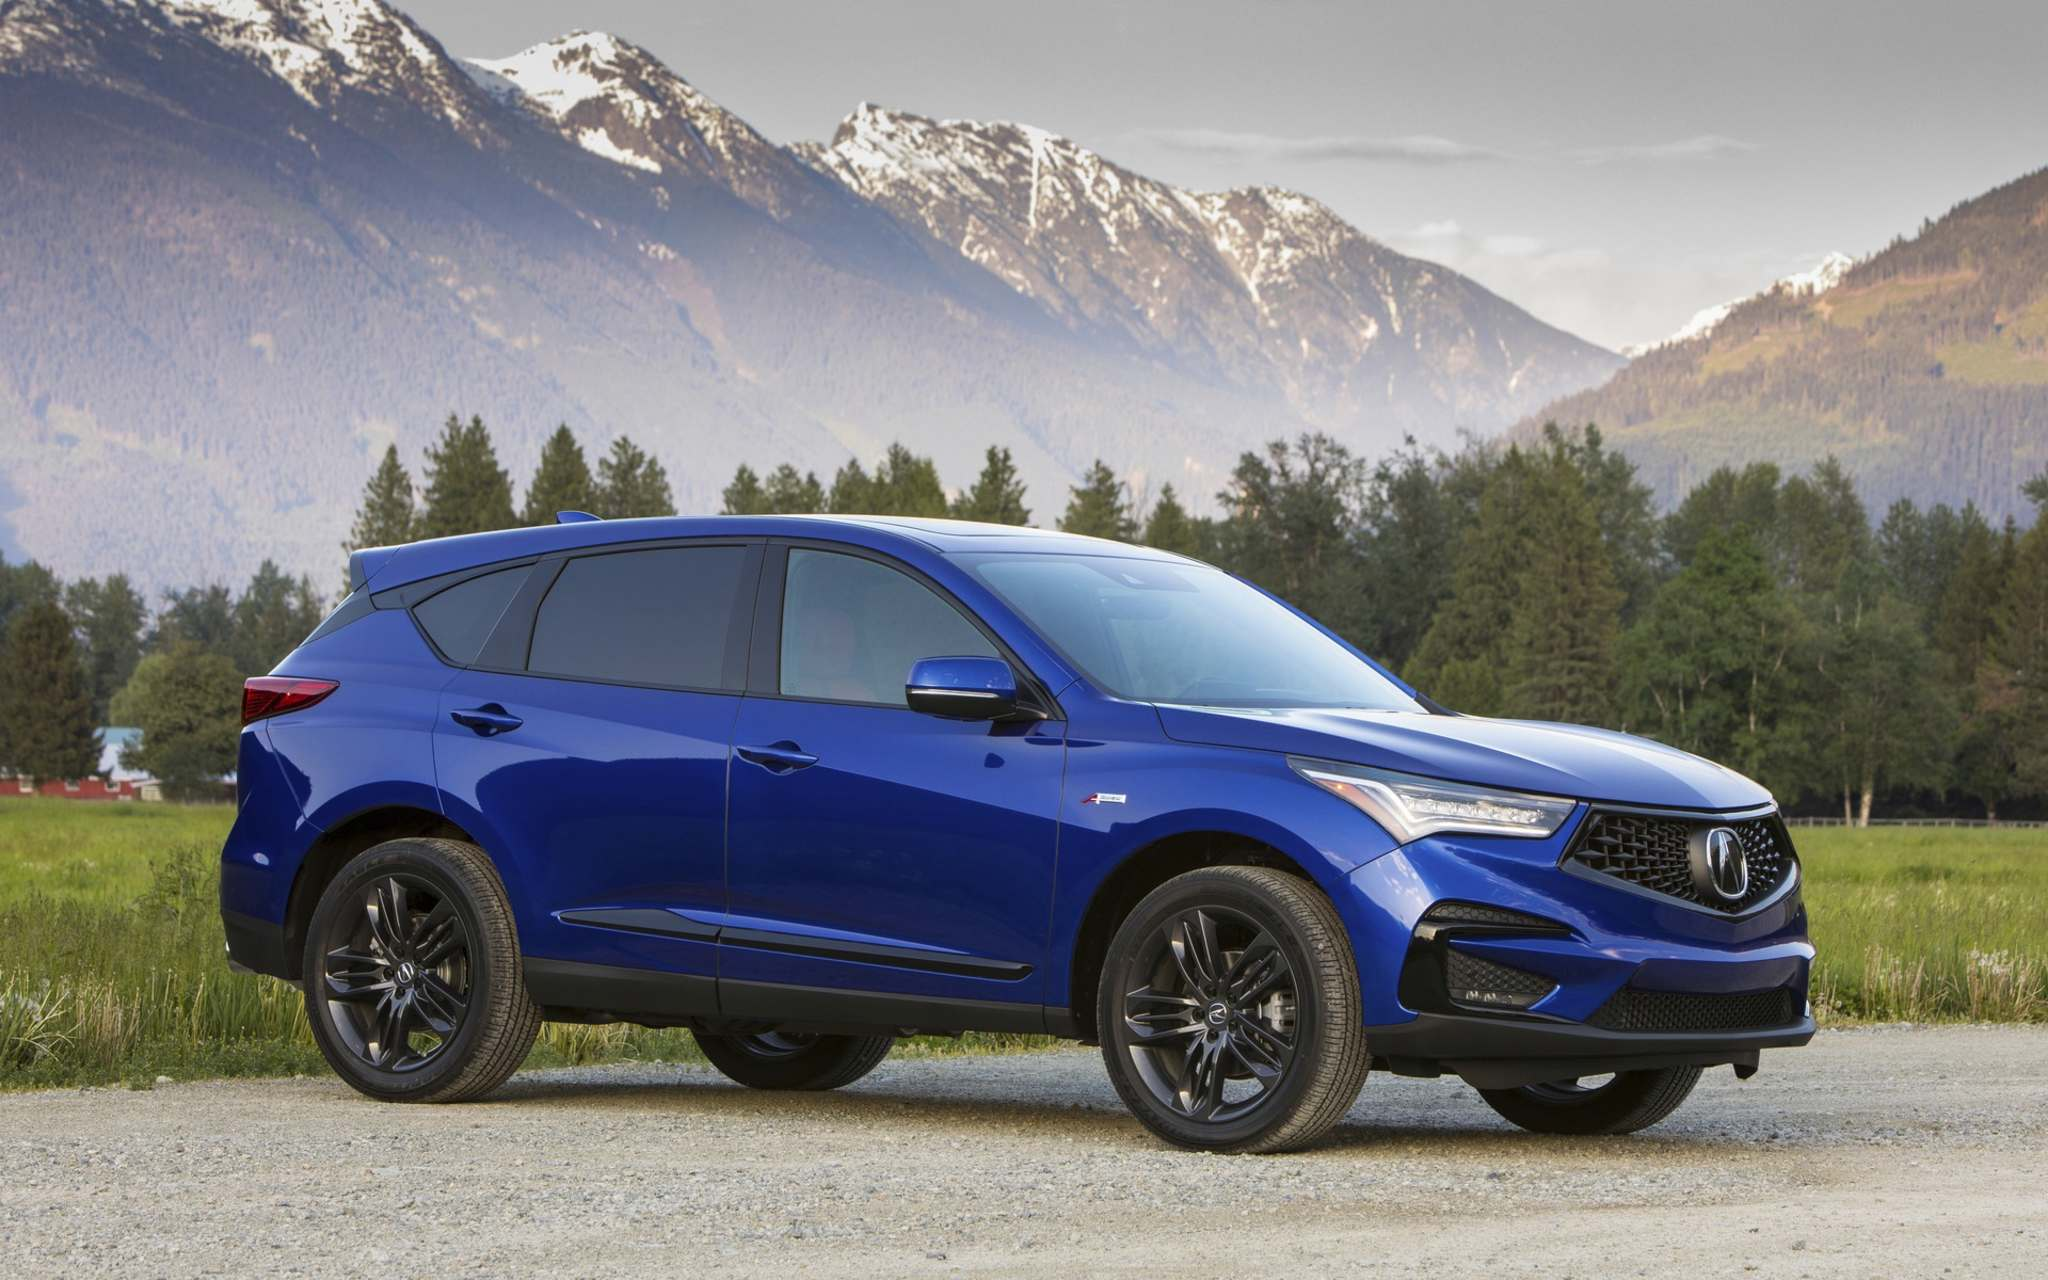 The 2019 Acura RDX is a fantastic new vehicle with only a few shortcomings related to its user interface. The new RDX earns extra points on the design side with its sporty profile.